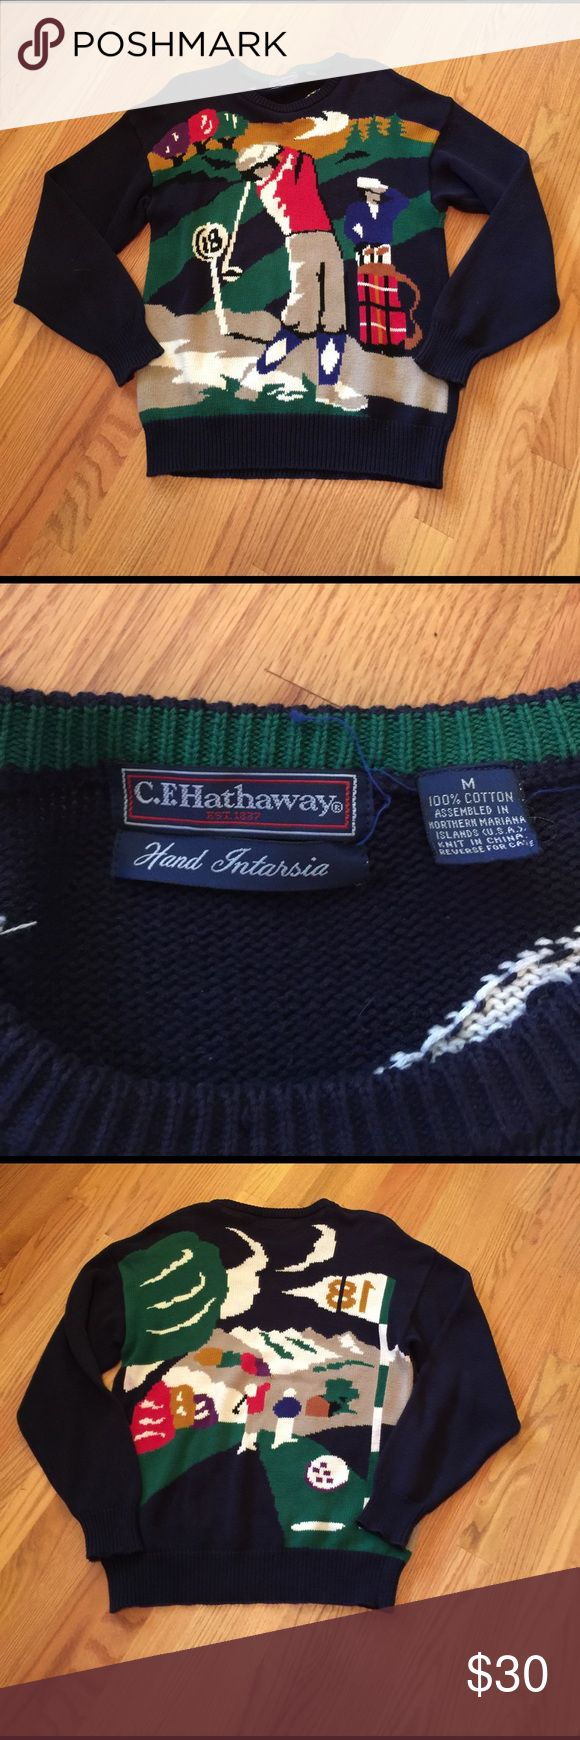 Vintage golf sweater Vintage golf sweater. Has couple small holes that can be sewn up. Super fun ! C.F Hathaway  Sweaters